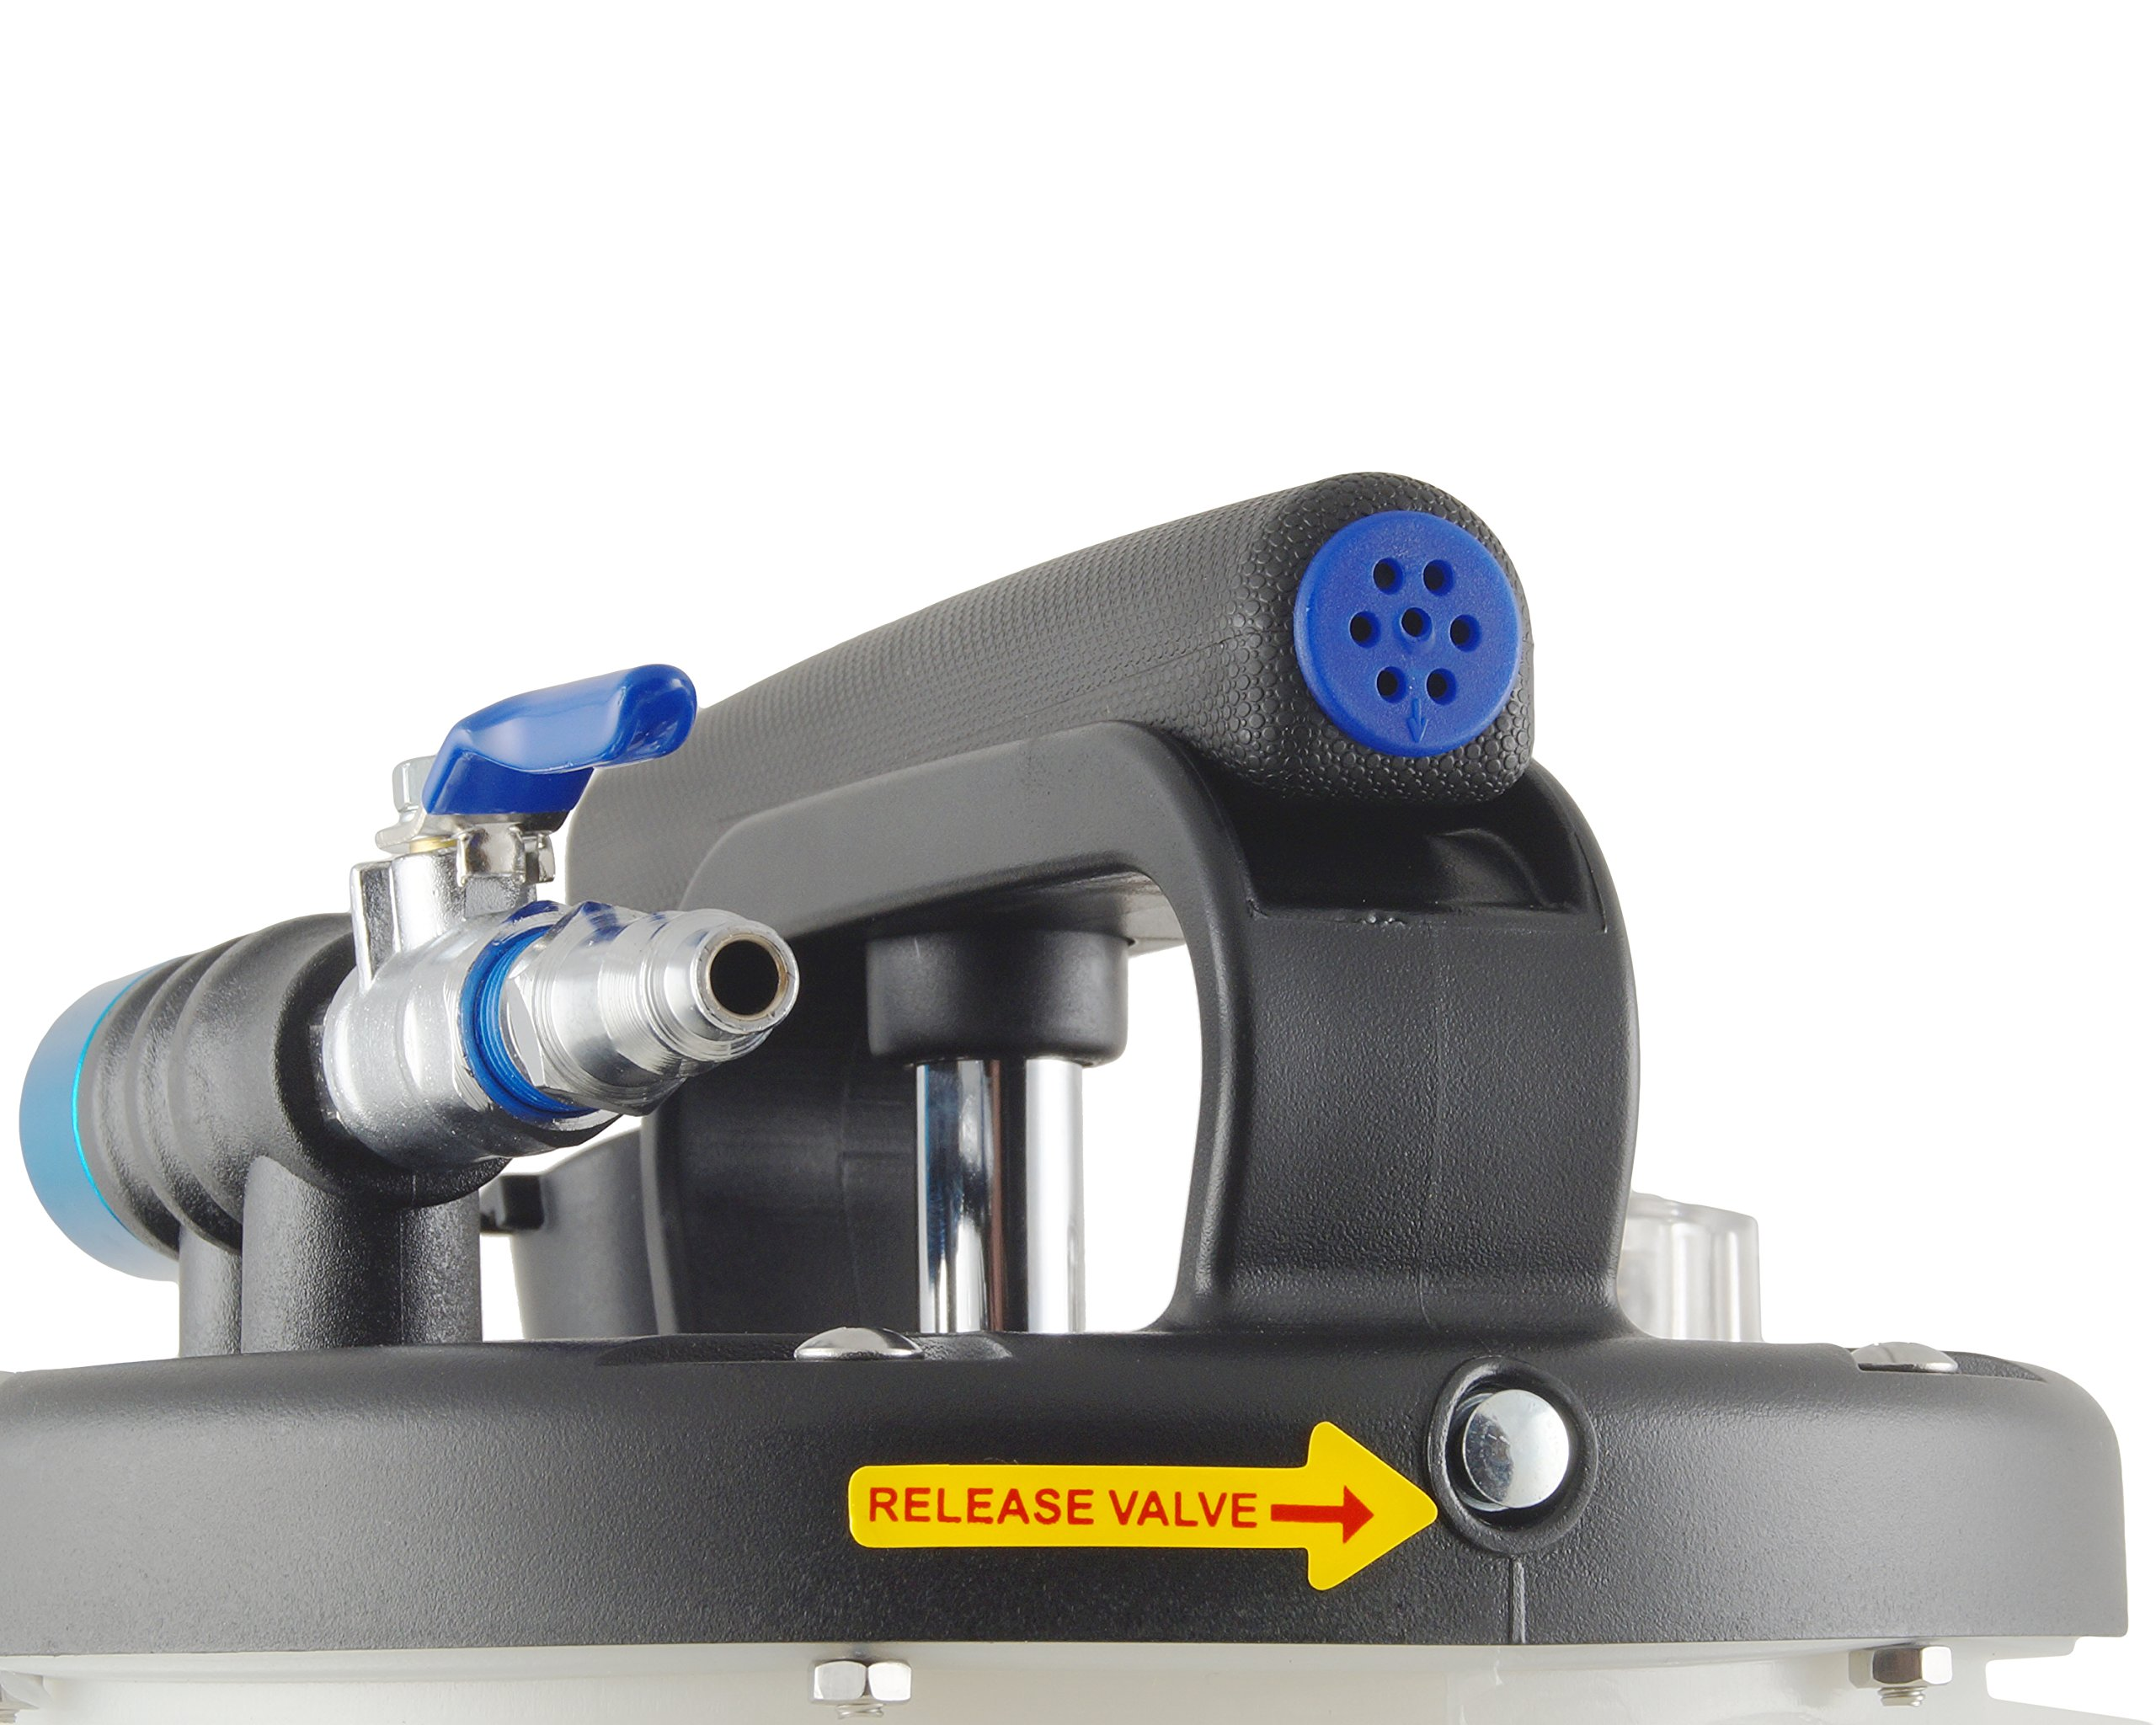 EXtoil 15 Liter Professional Pneumatic Oil Extractor by EXtoil (Image #2)